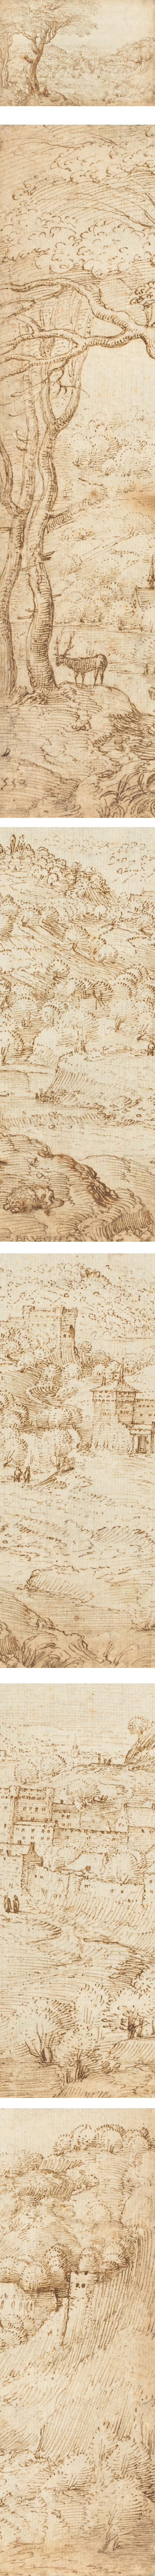 Landscape with the Penitence of Saint Jerome, Pieter Bruegel the Elder, pen and brown ink